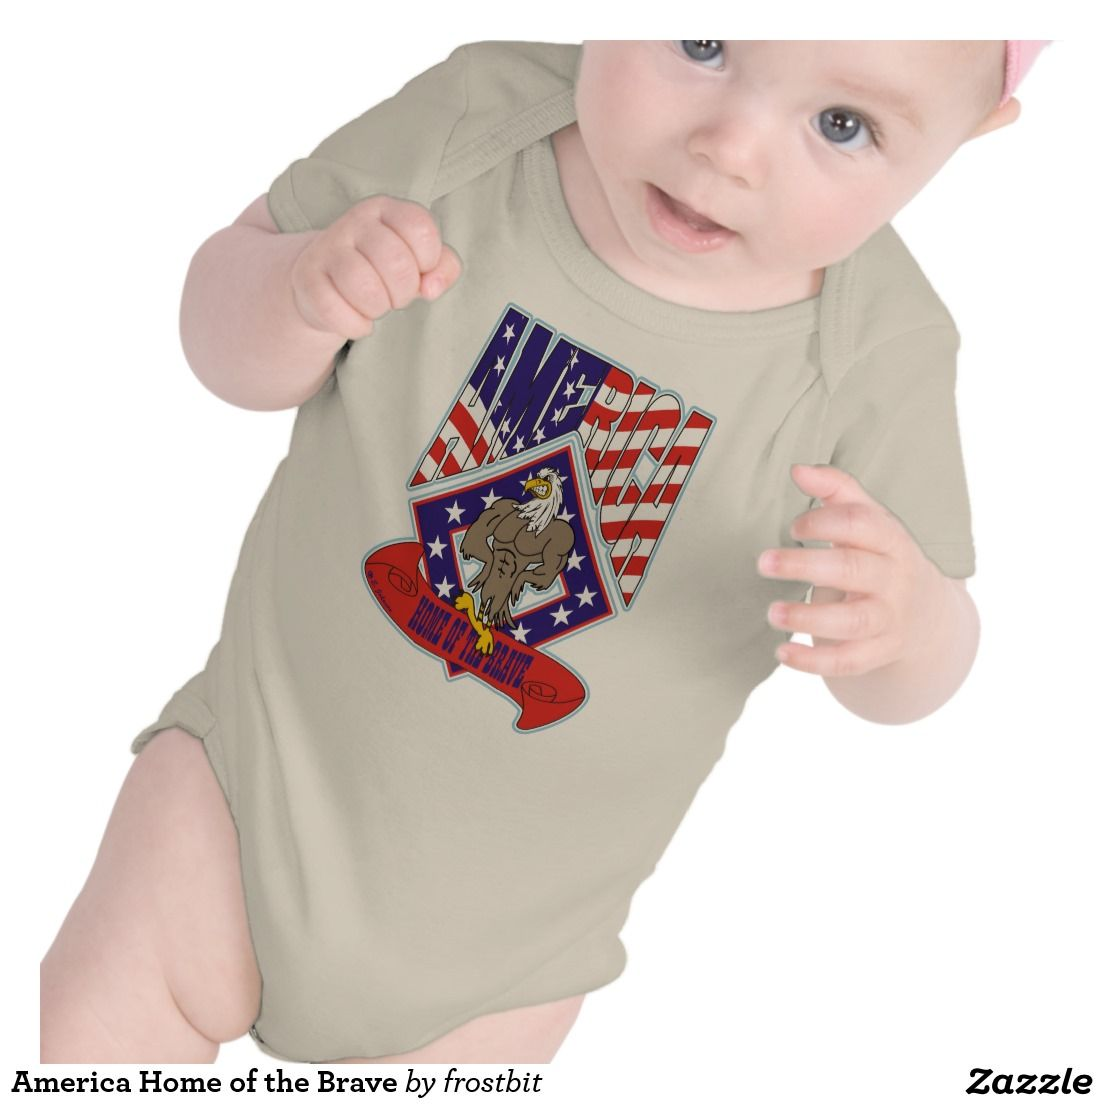 America Home of the Brave Tees